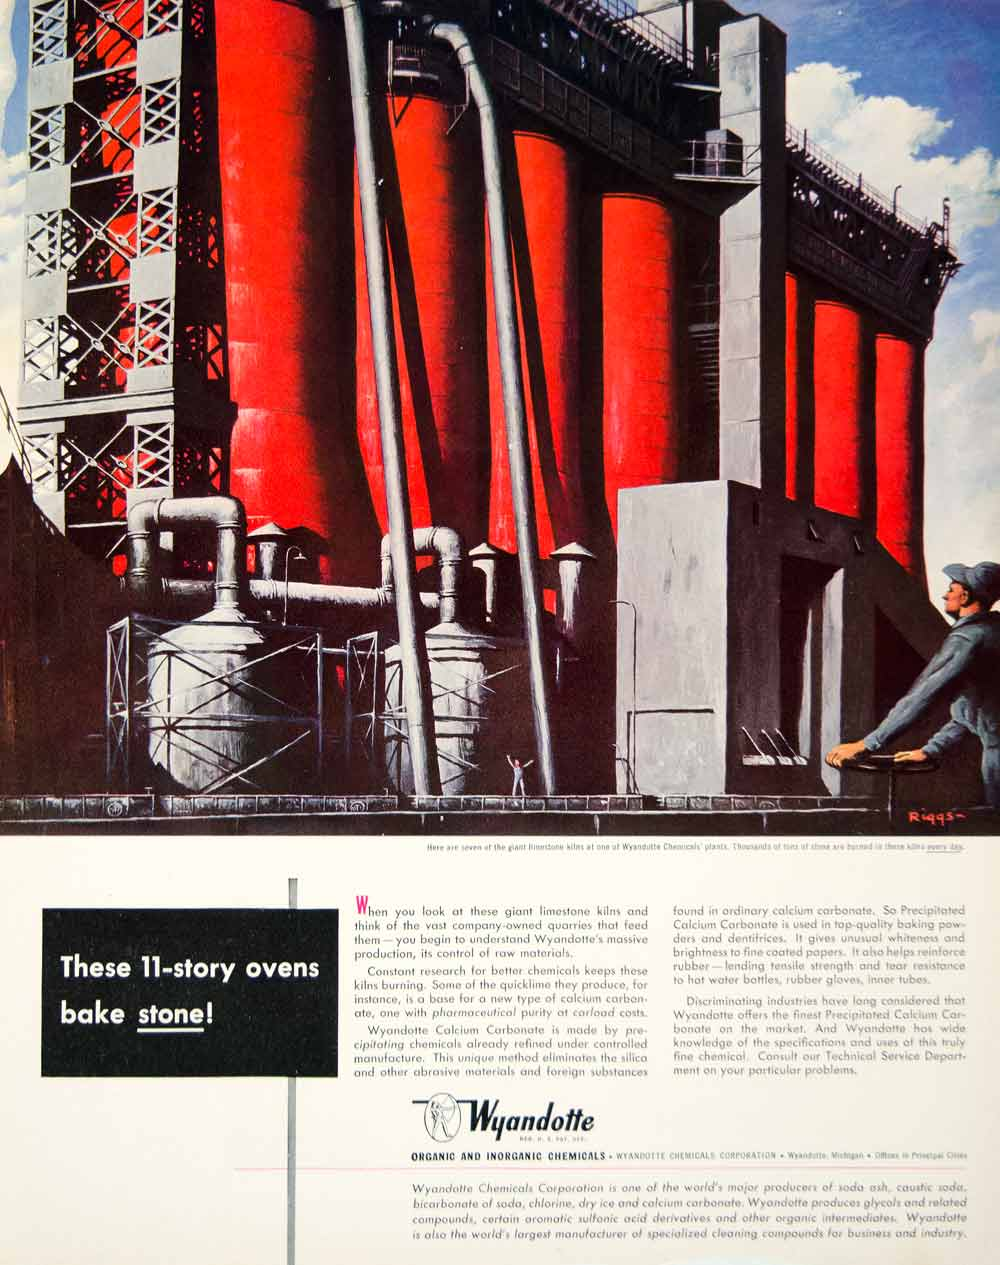 1949 Ad Wyandotte Limestone Kiln Chemicals Calcium Carbonate Industrial FTM4